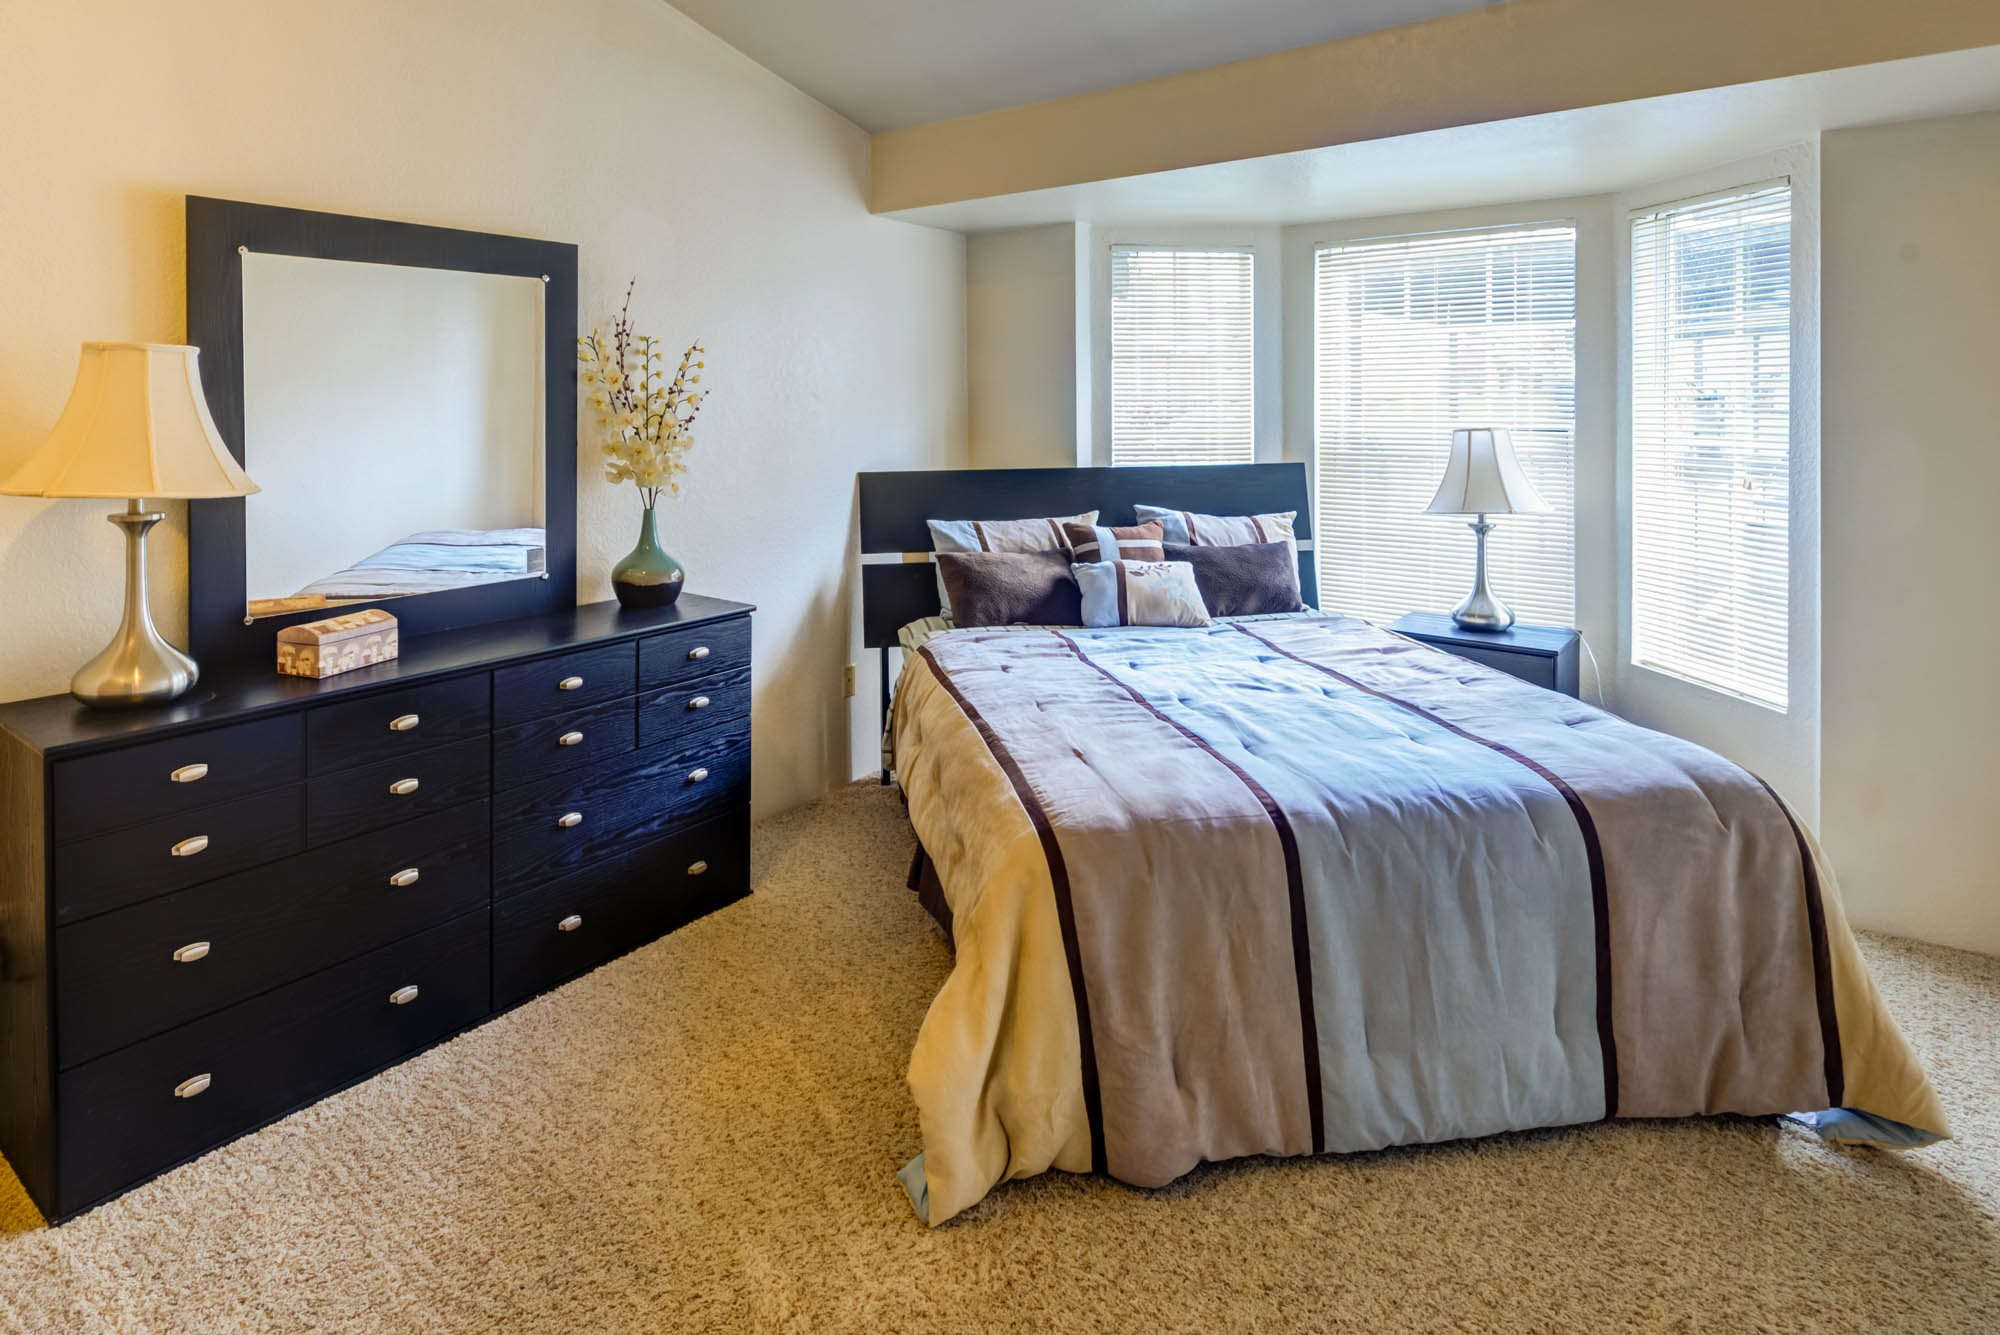 Live in cozy bedrooms at Westview Village, Renton, WA,98055